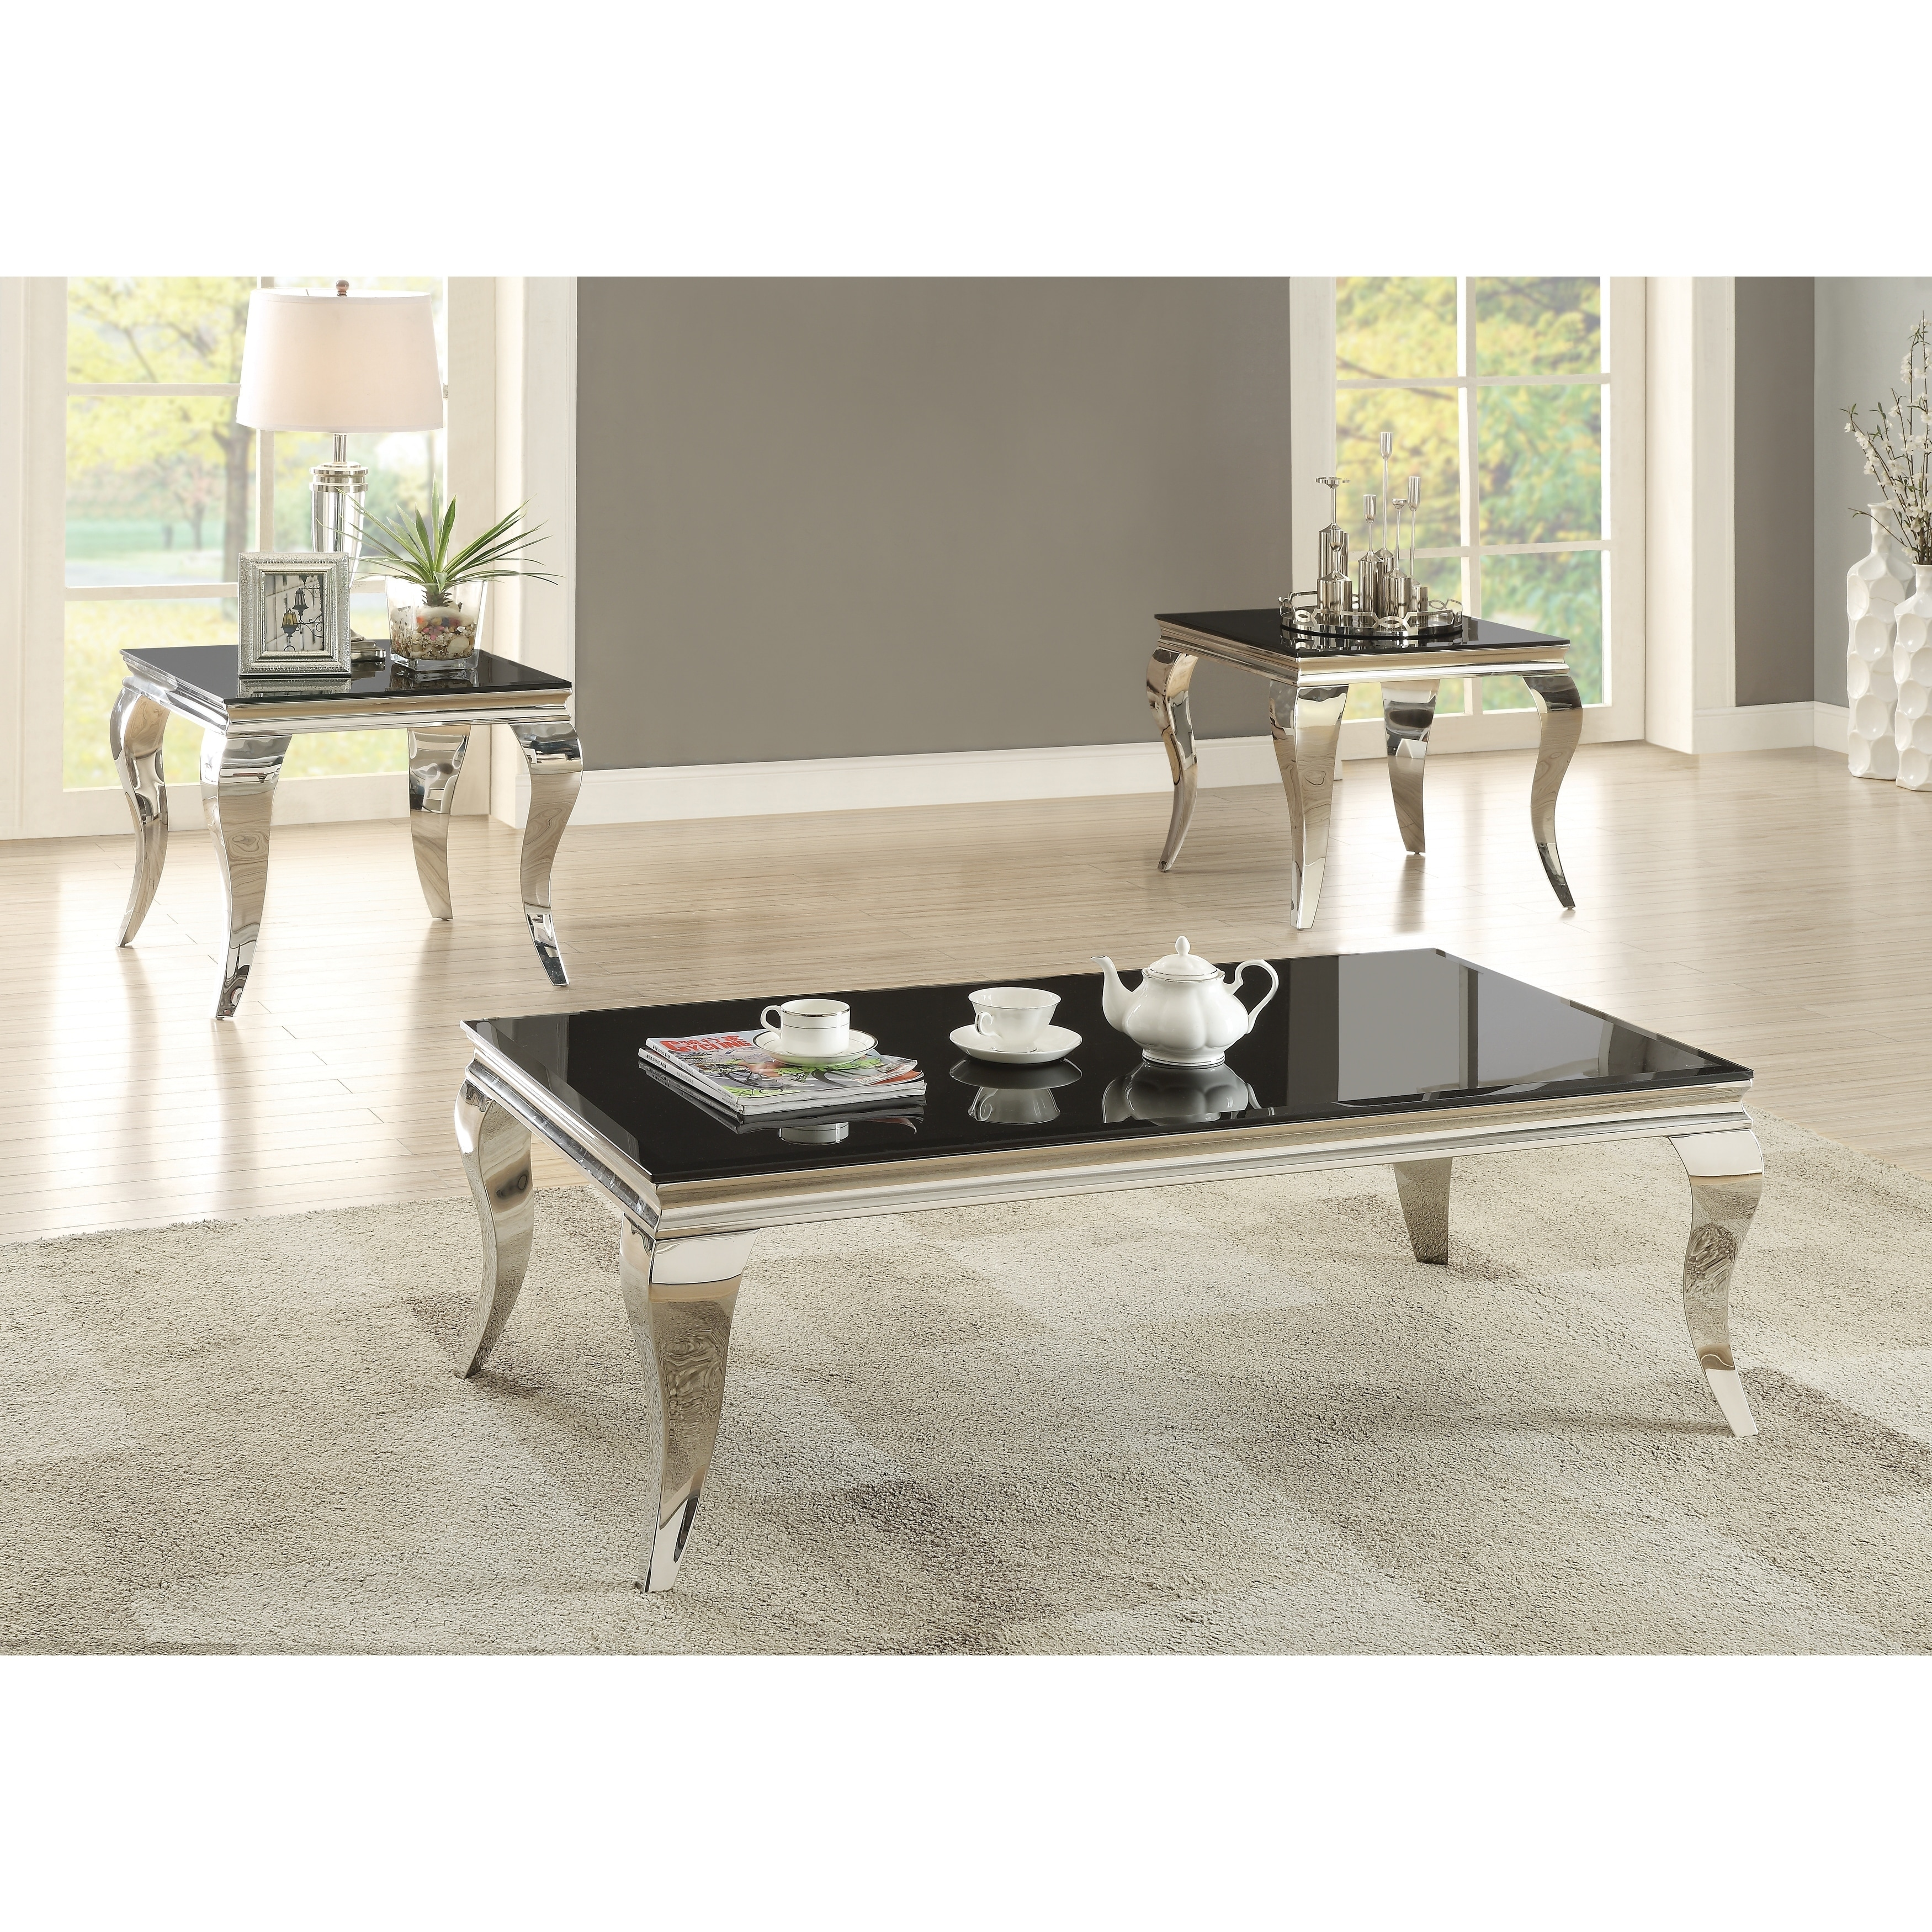 Contemporary Black Coffee Table On Free Shipping Today 21339006